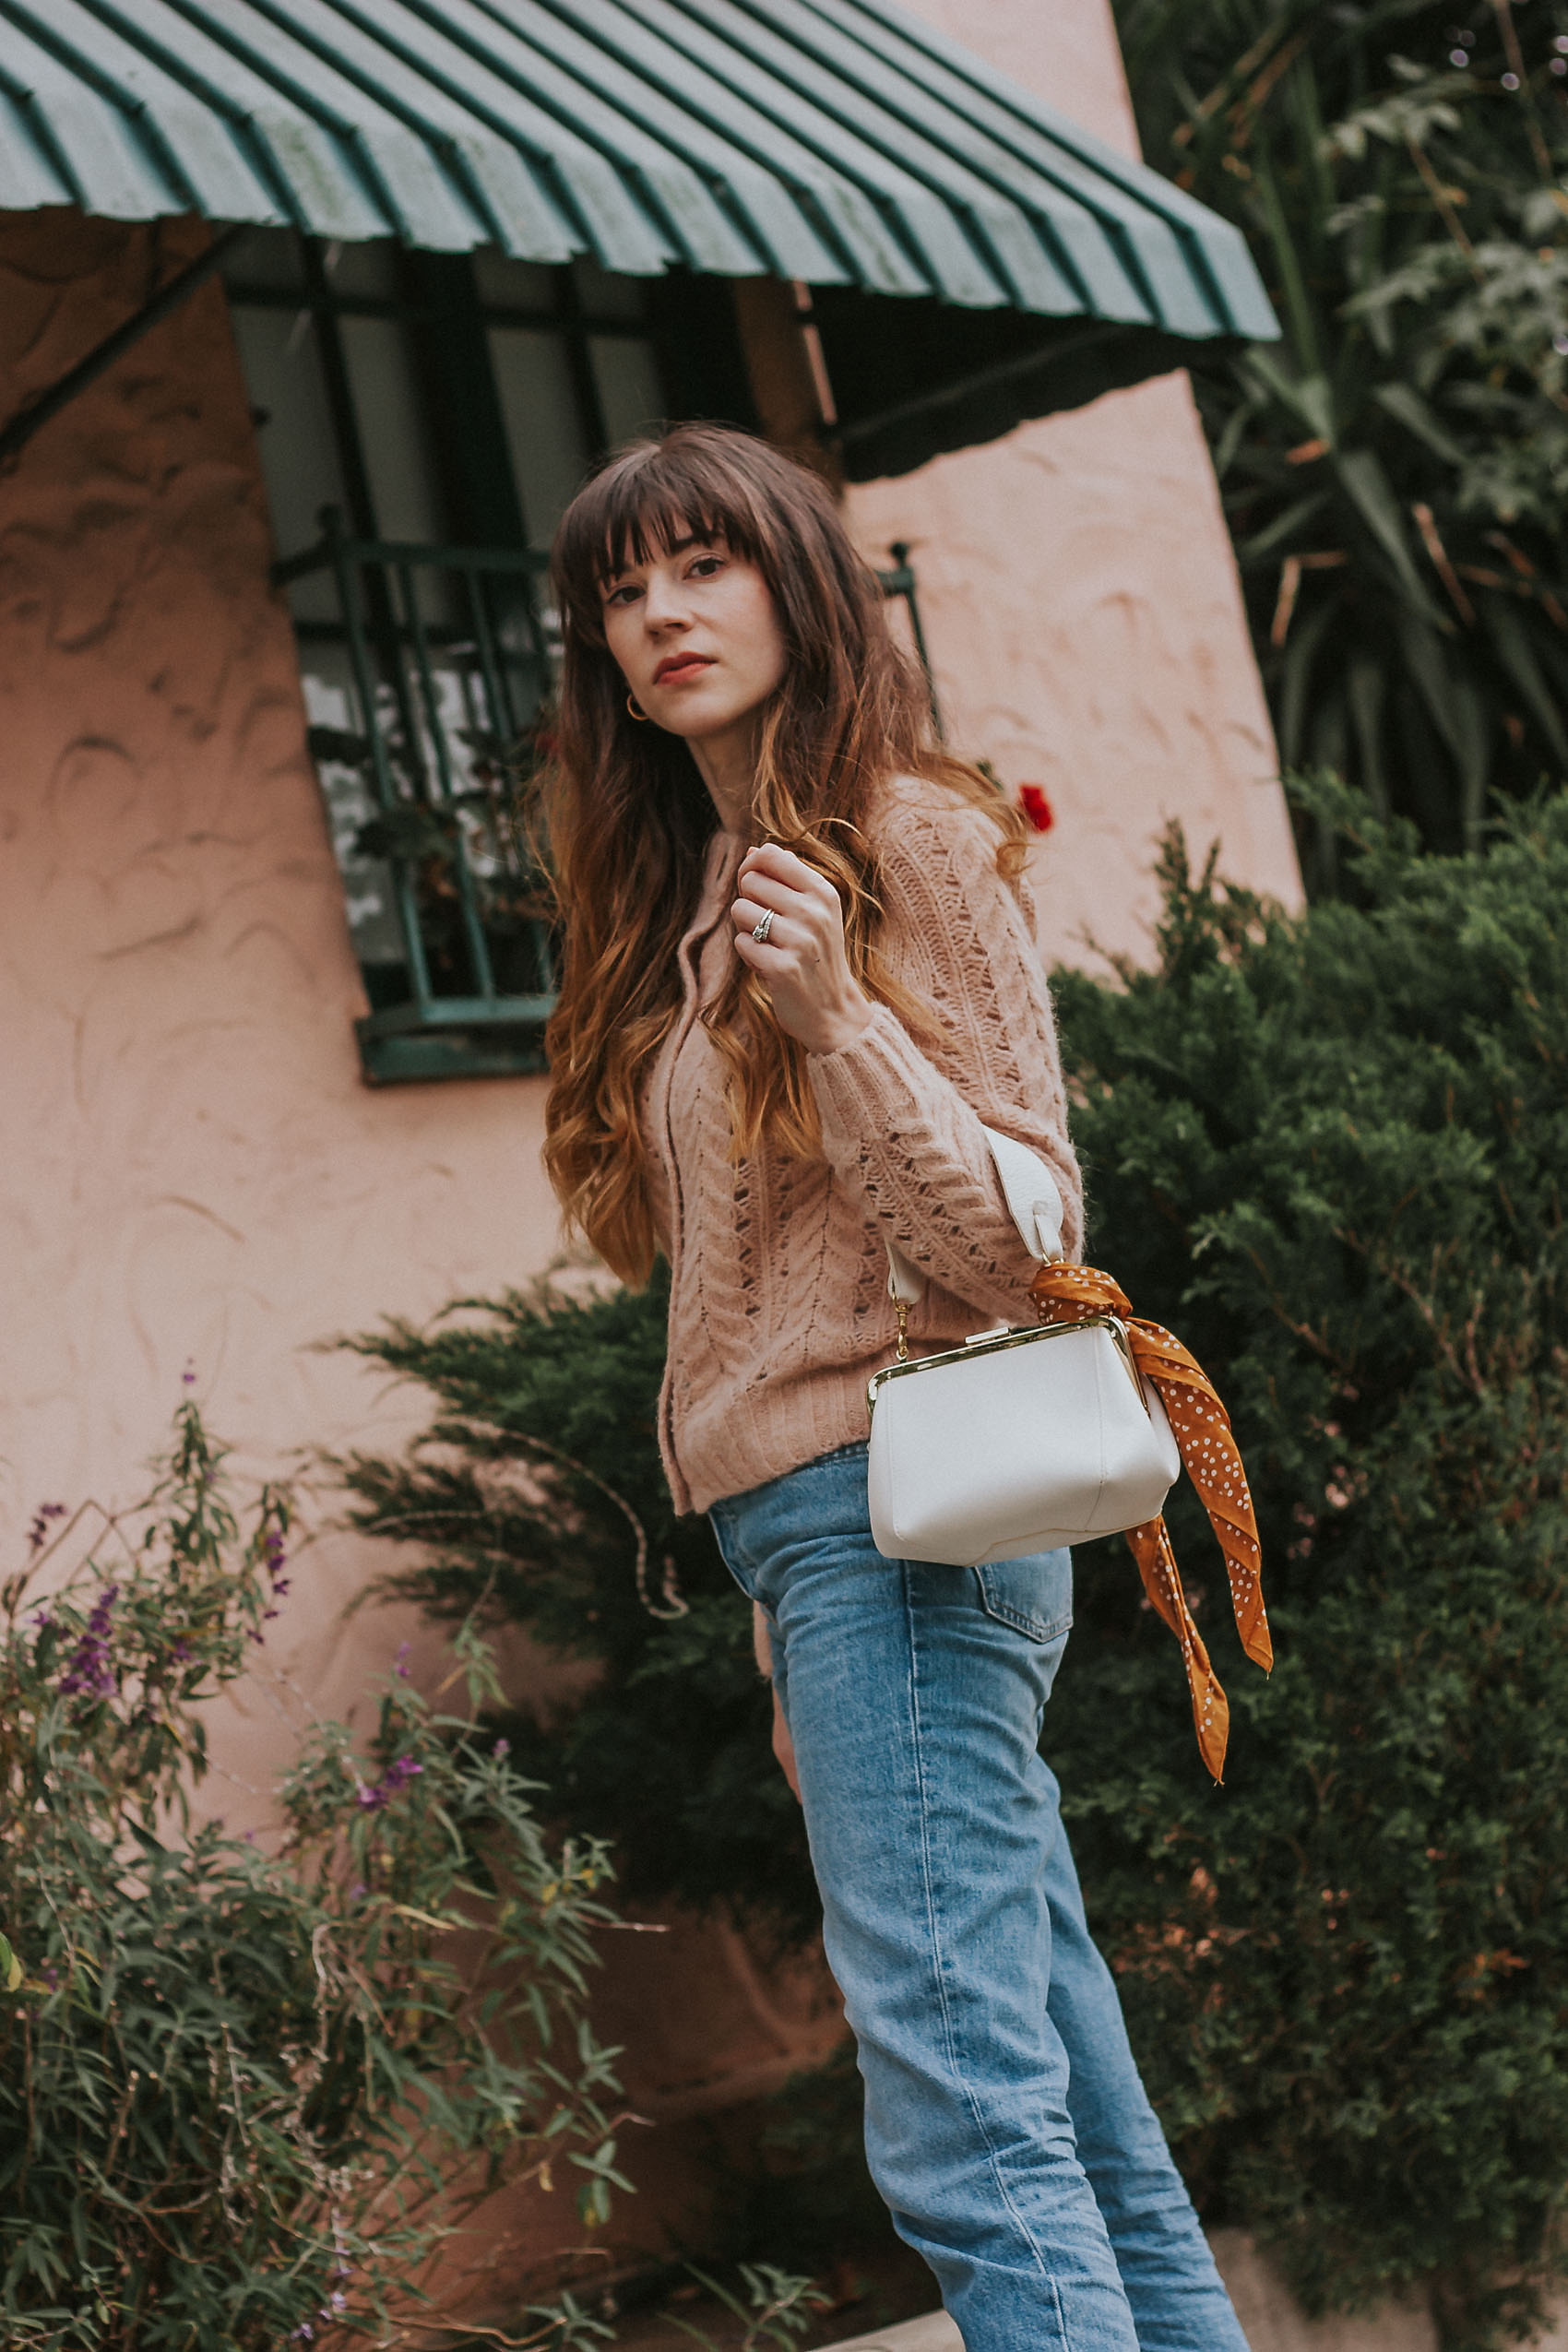 J.Crew Point Sure Pointelle Sweater with Clare V Le Box Bag